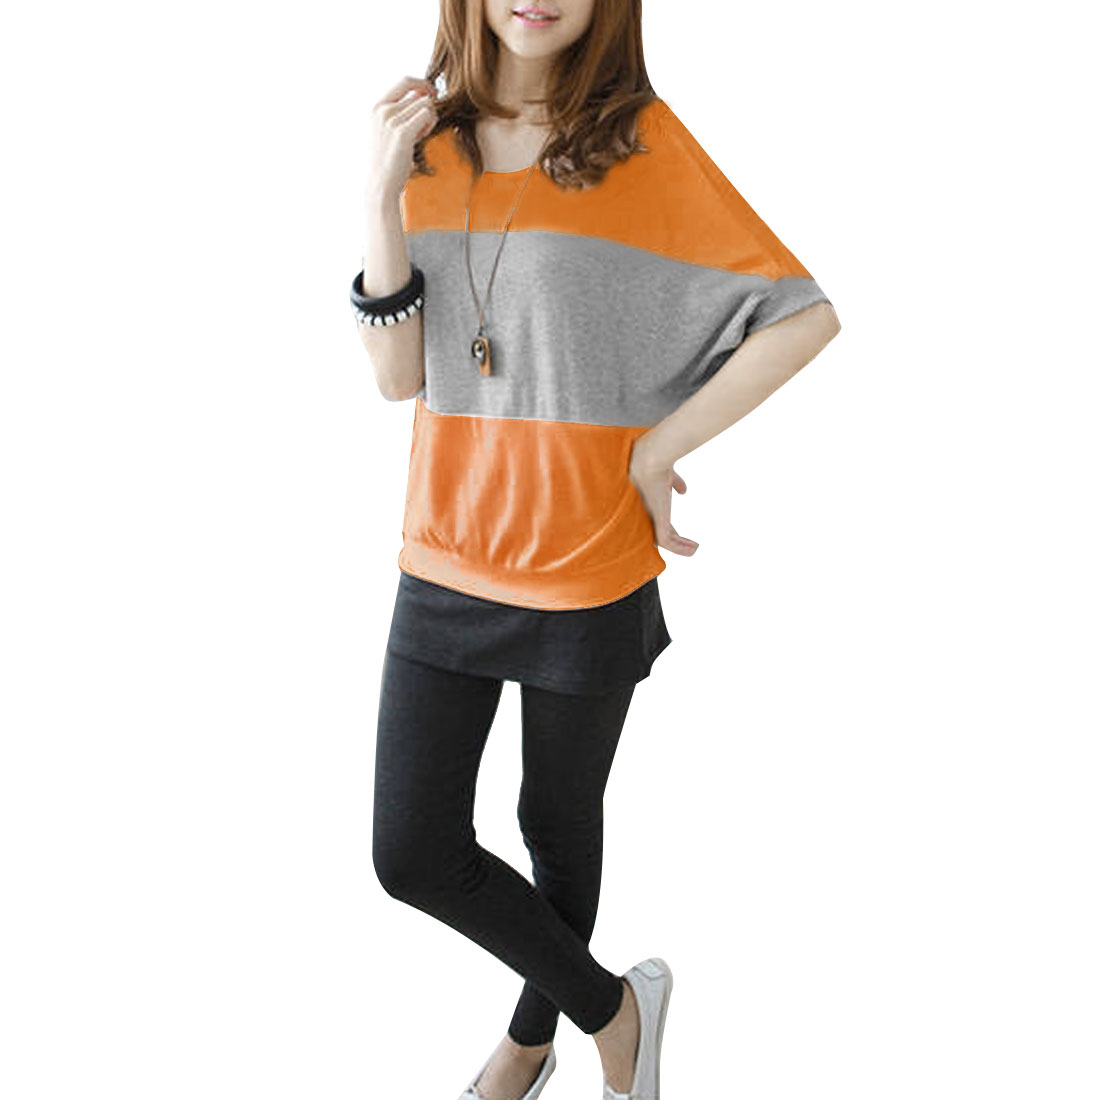 Korea Style Short Sleeves Color Block T-shirt Orange Gray M for Ladies